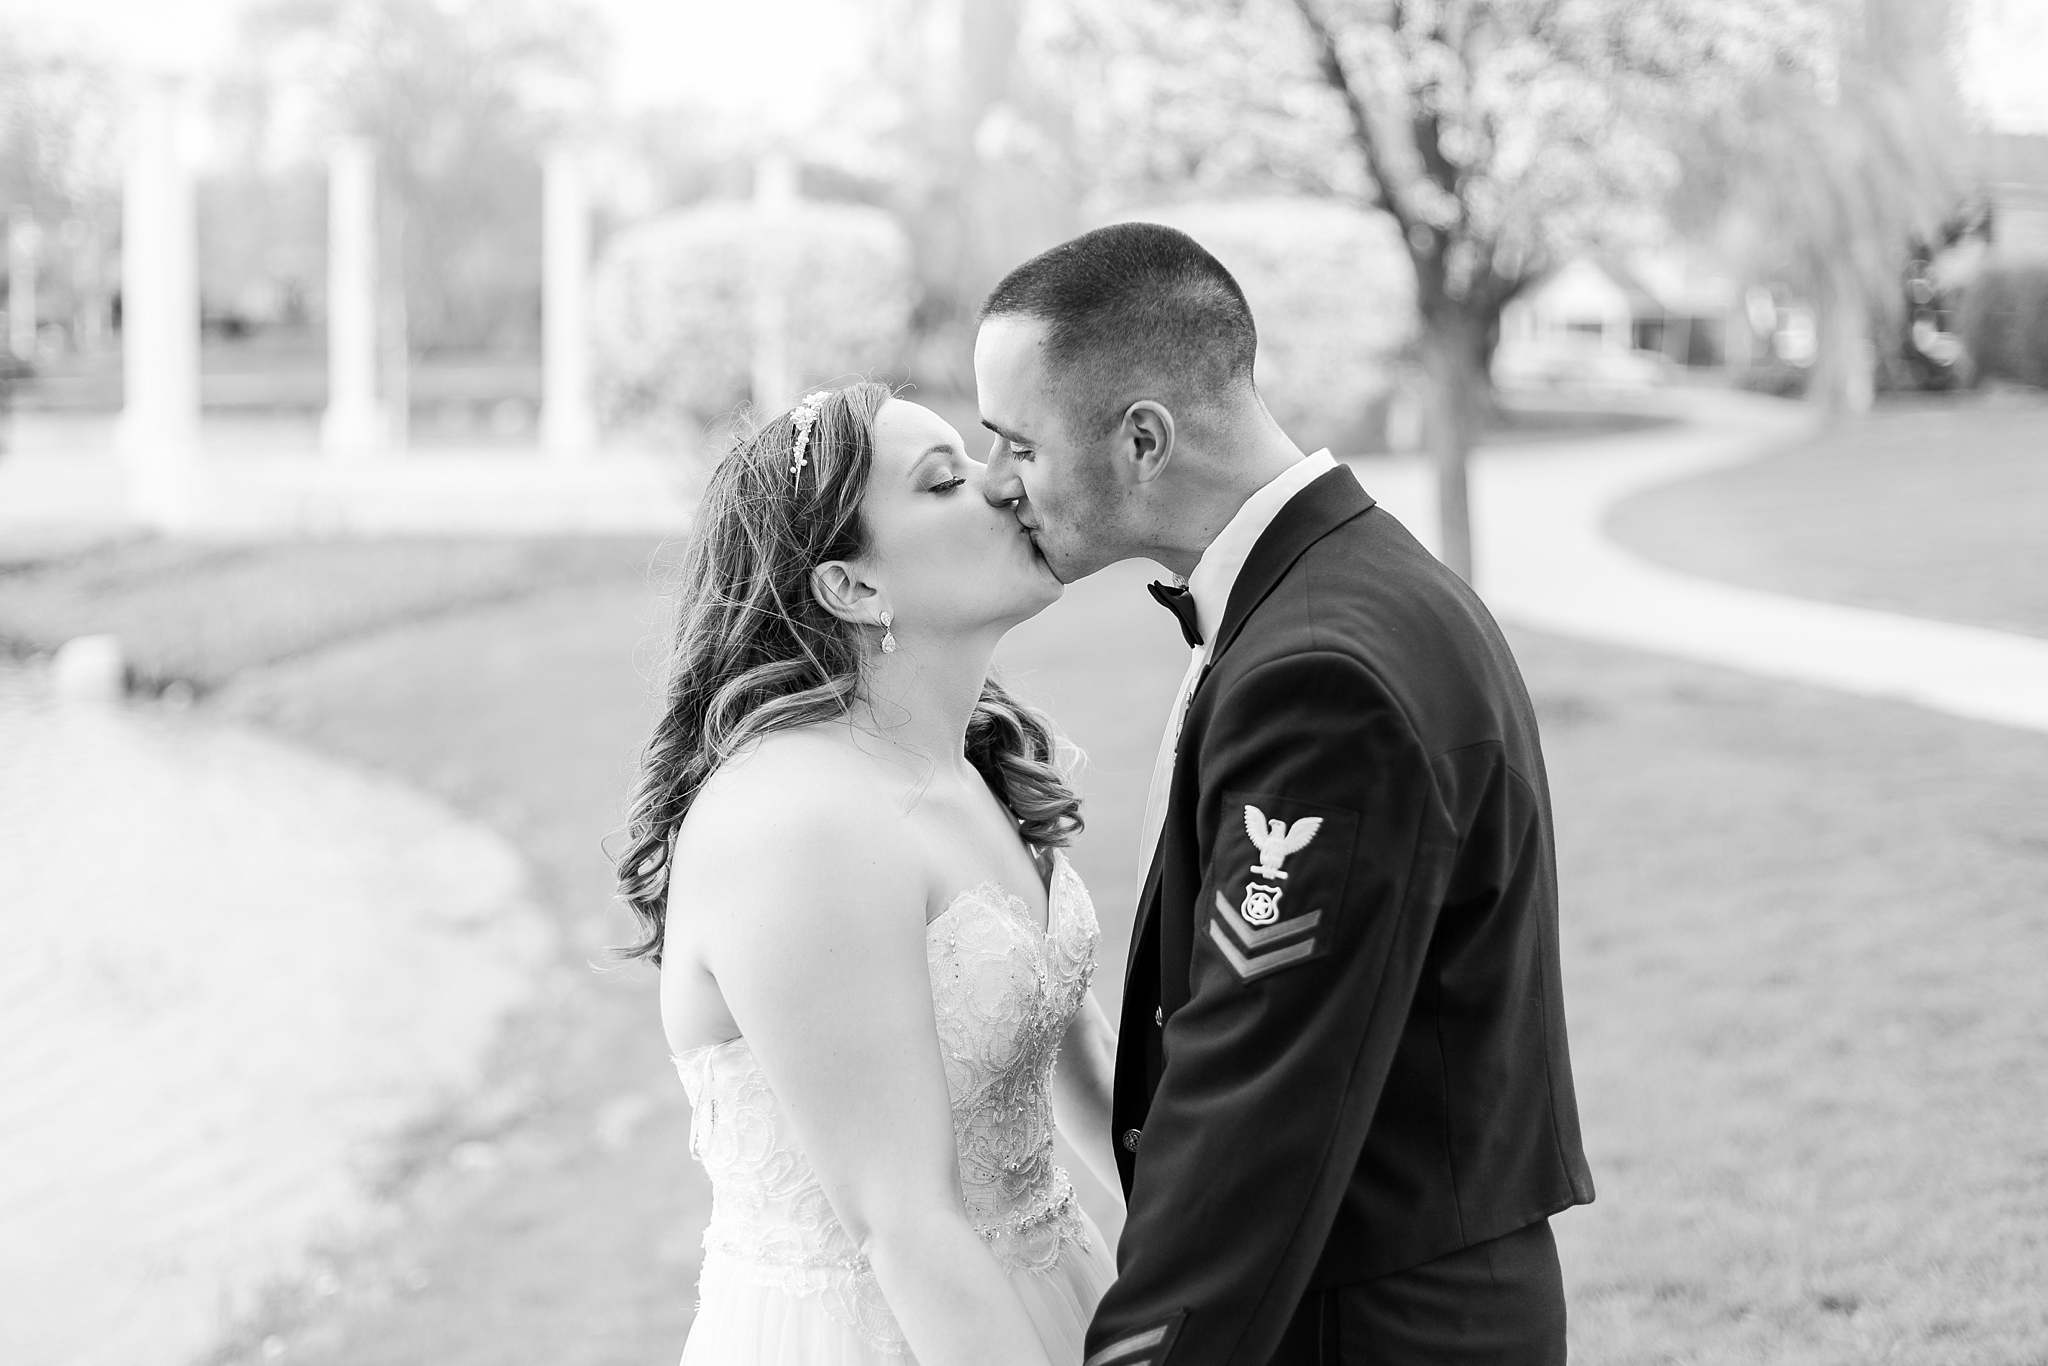 romantic-artful-candid-wedding-photos-in-st-clair-shores-at-the-white-house-wedding-chapel-by-courtney-carolyn-photography_0053.jpg